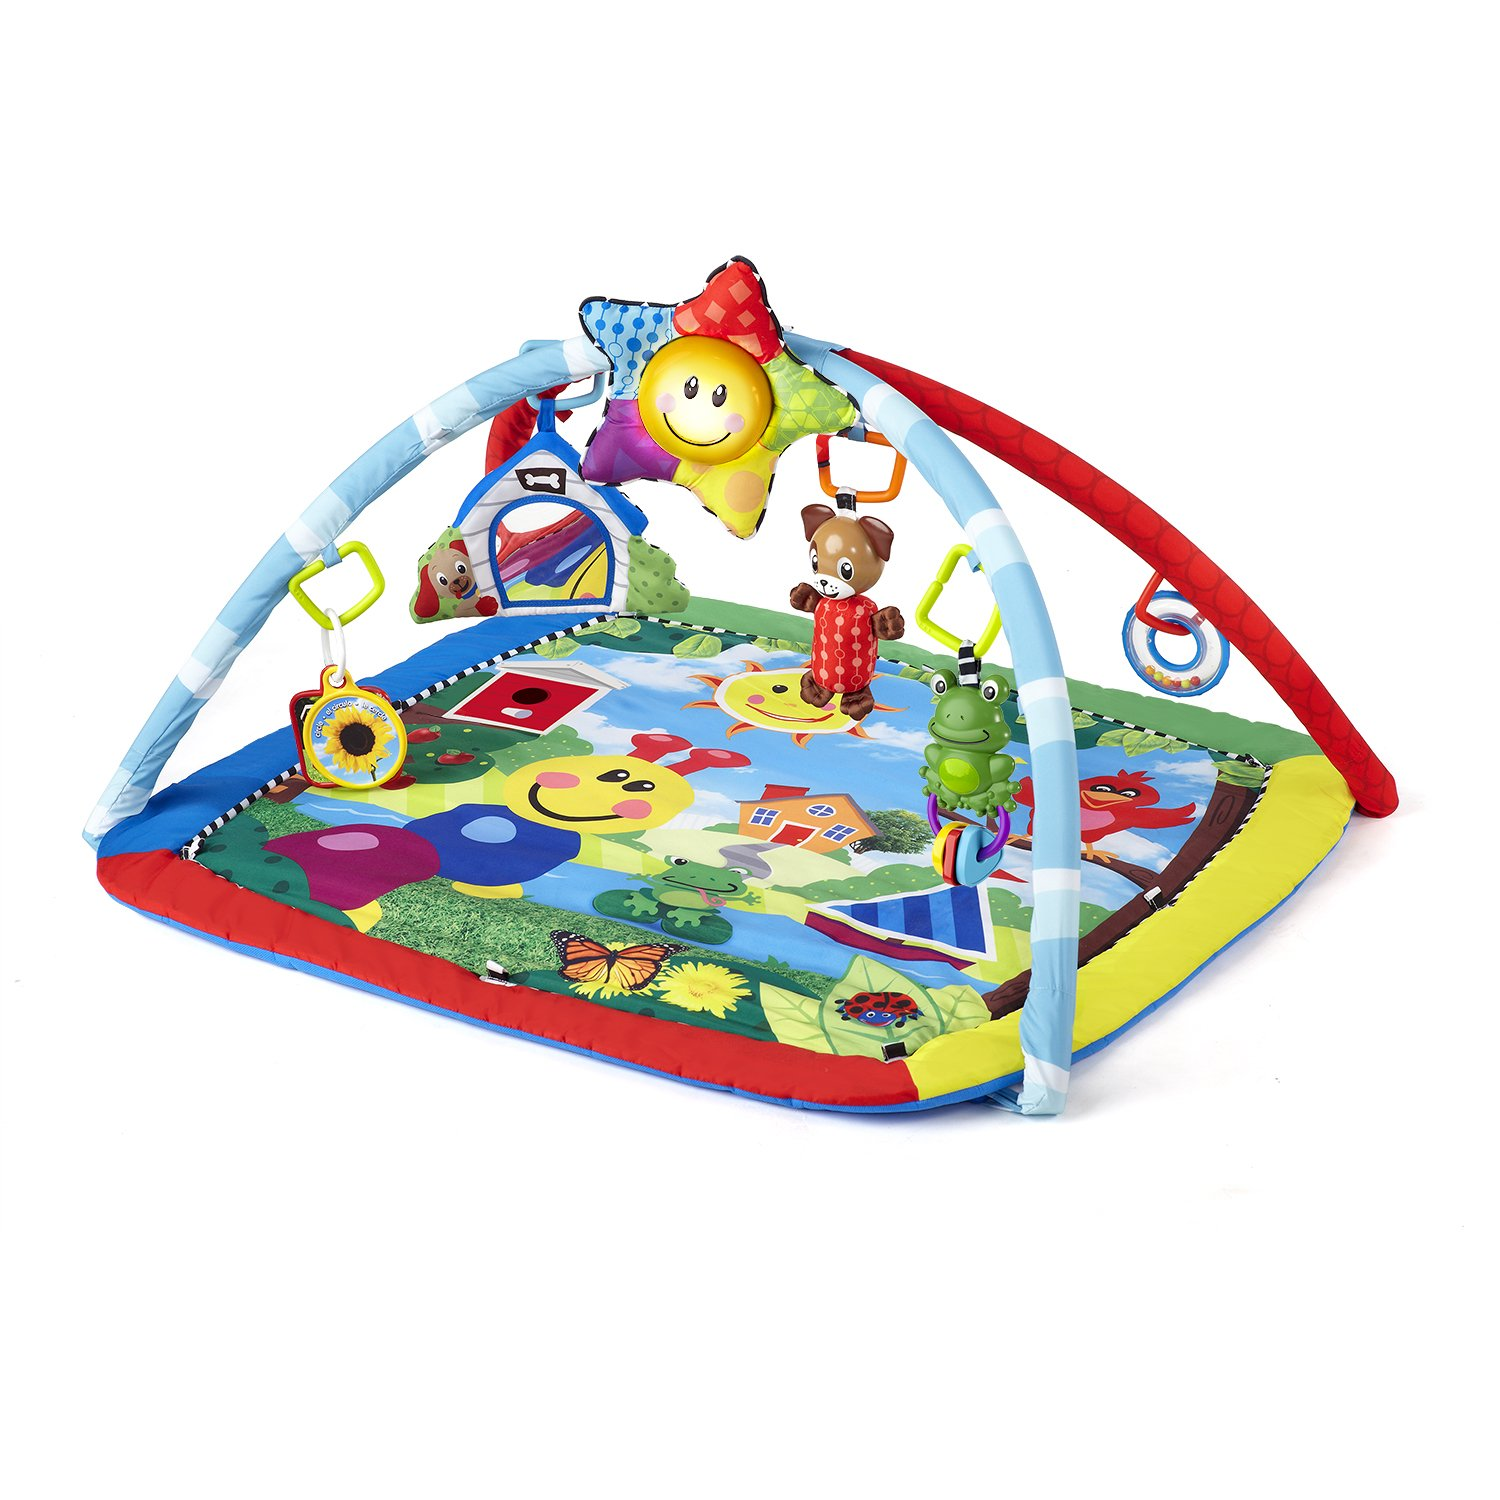 Baby Einstein Caterpillar and Friends Play Gym Amazon Baby